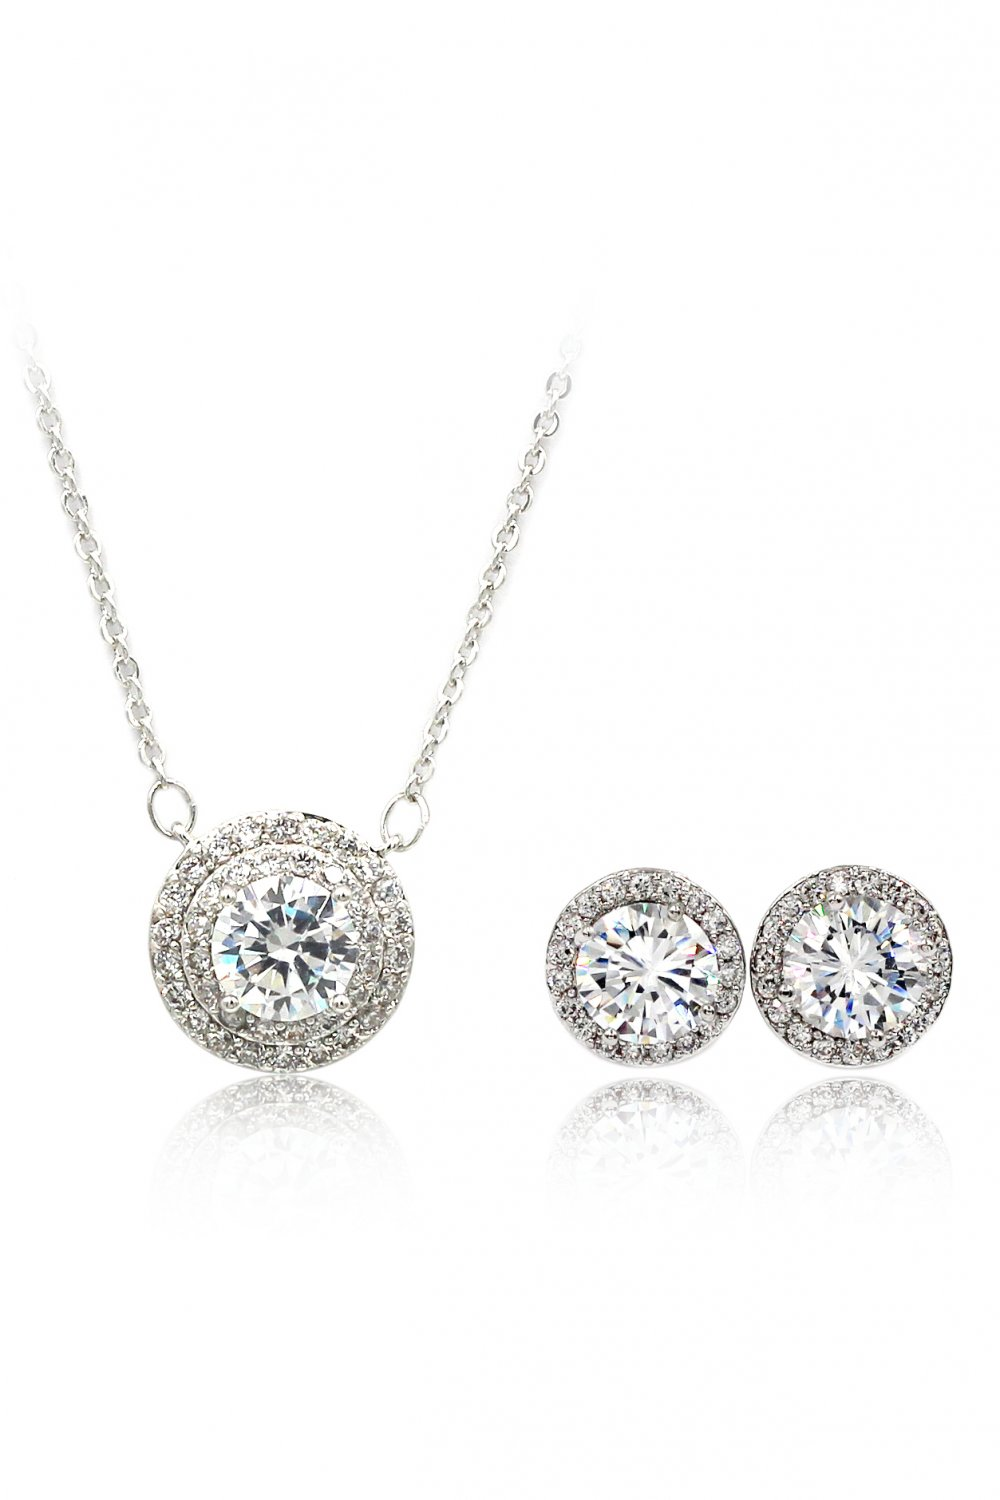 Sparkling crystal clavicle necklace earrings silver set